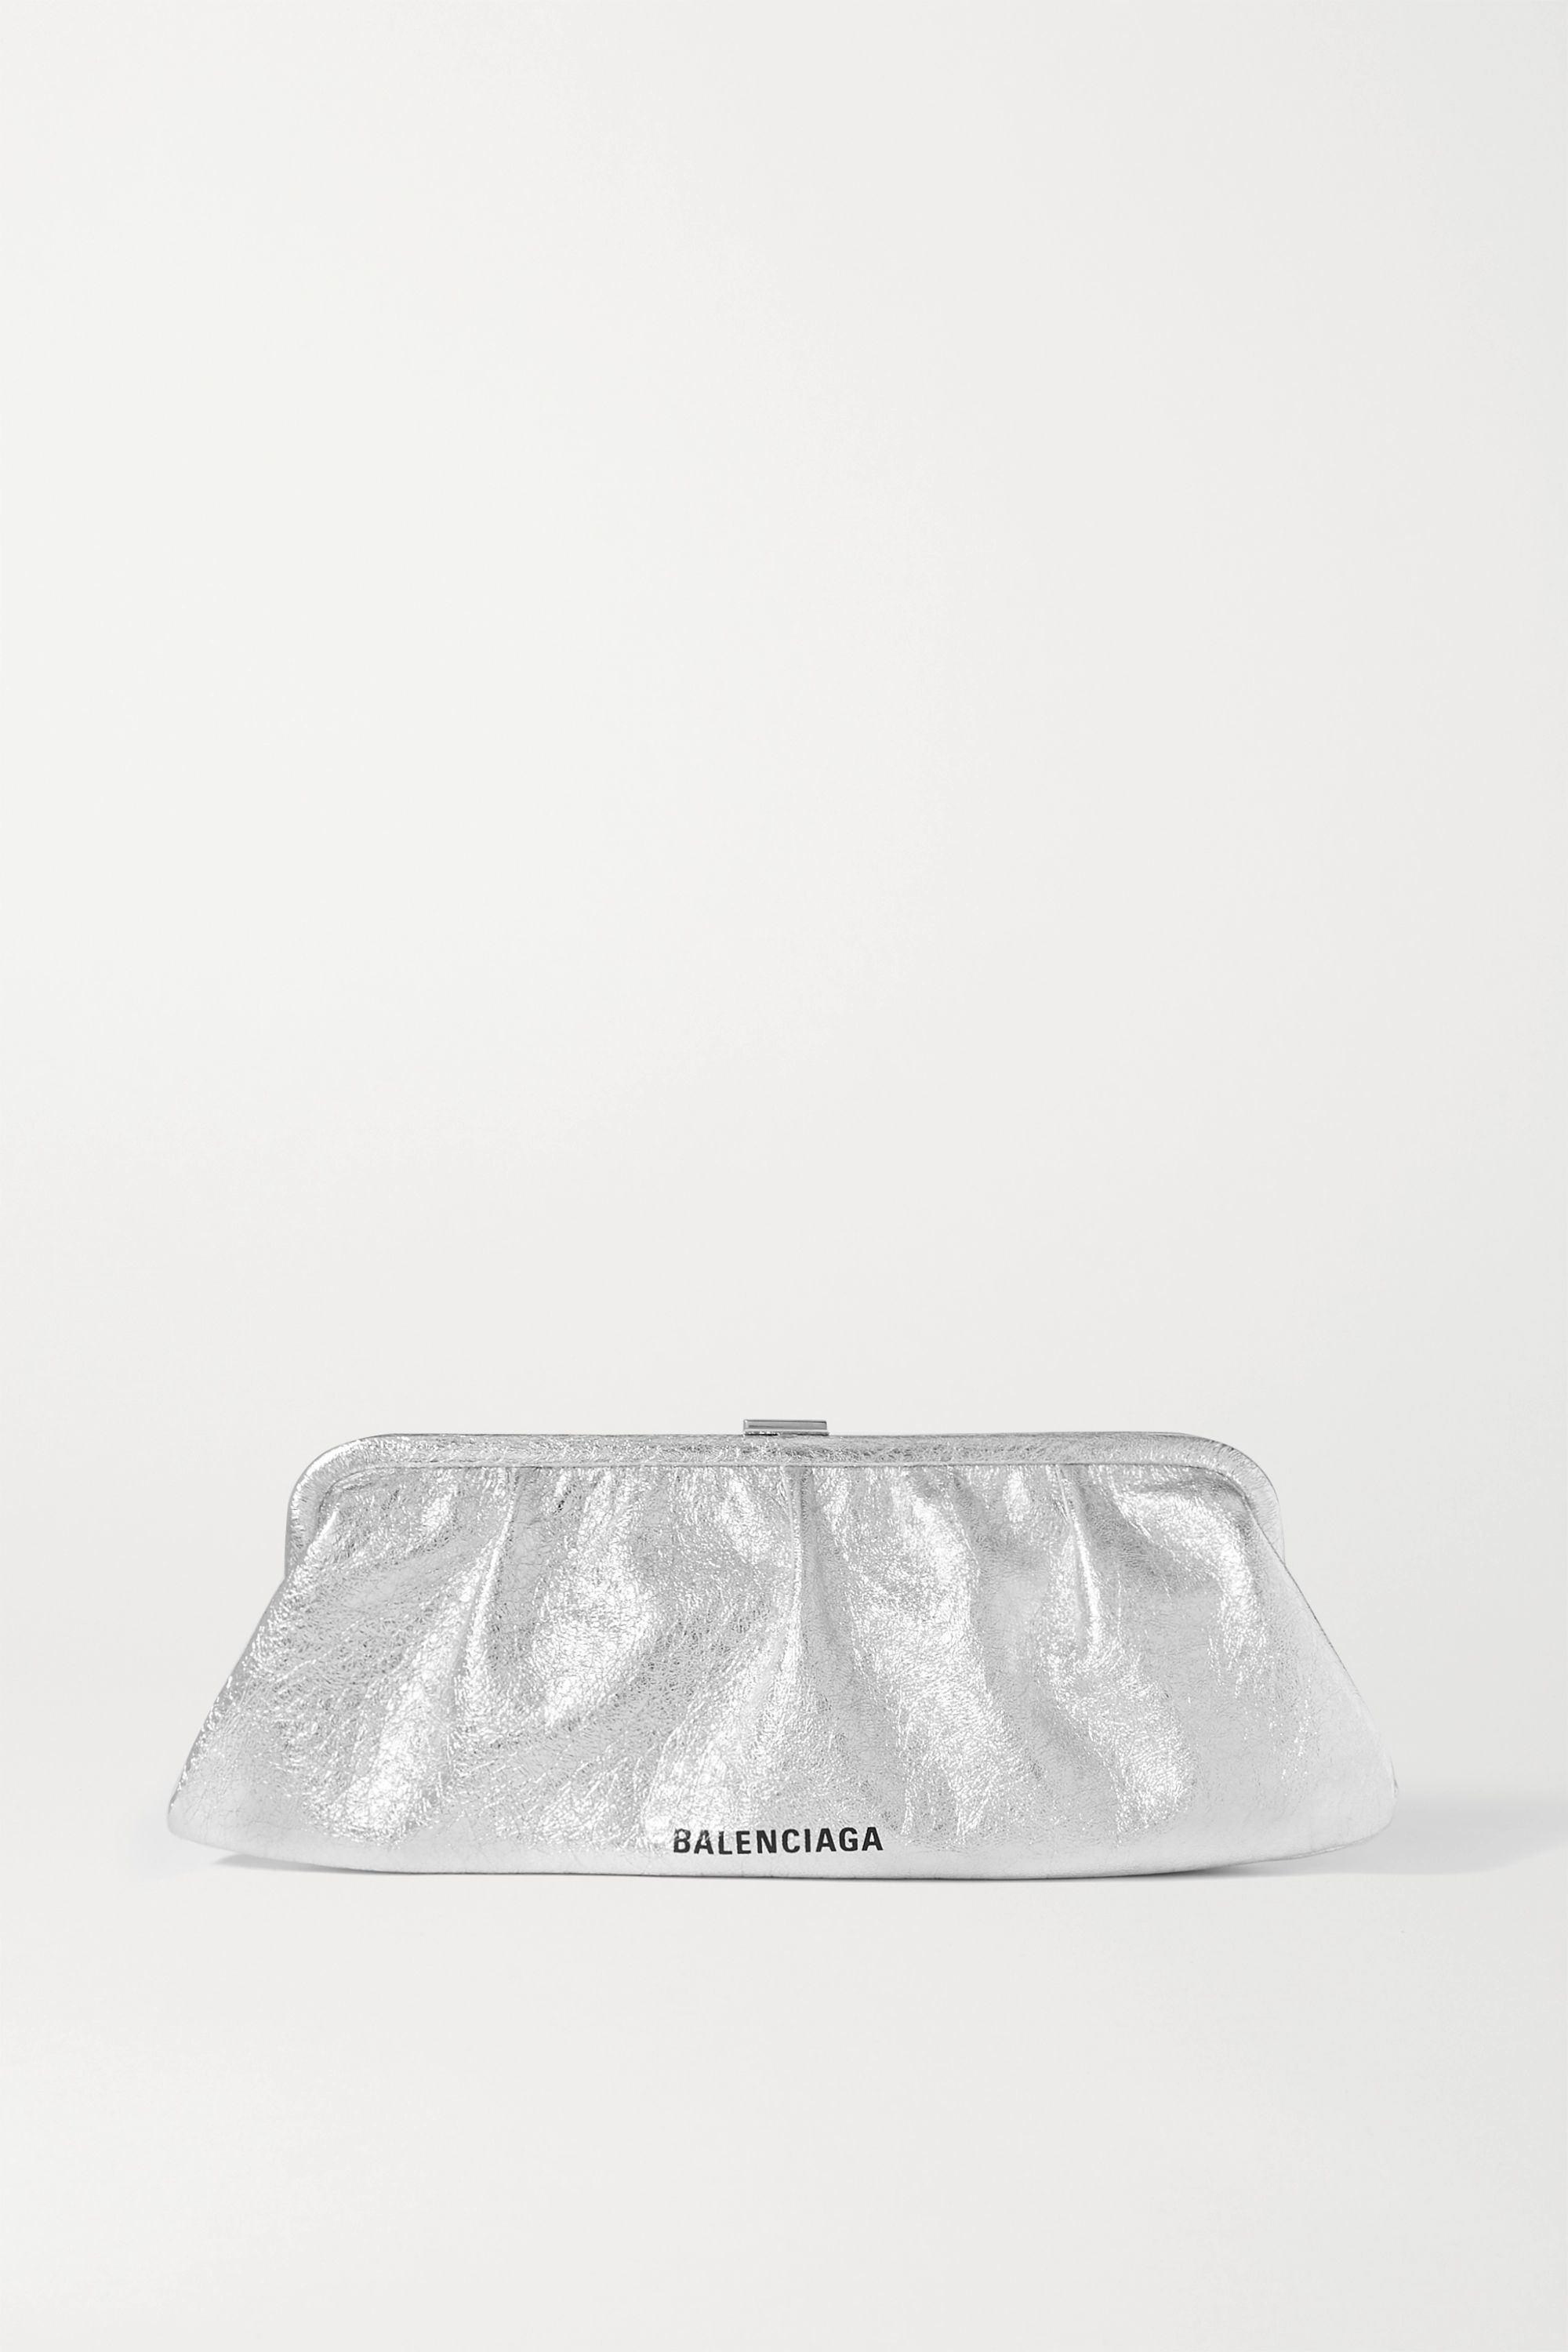 Balenciaga Cloud large logo-print metallic crinkled-leather clutch